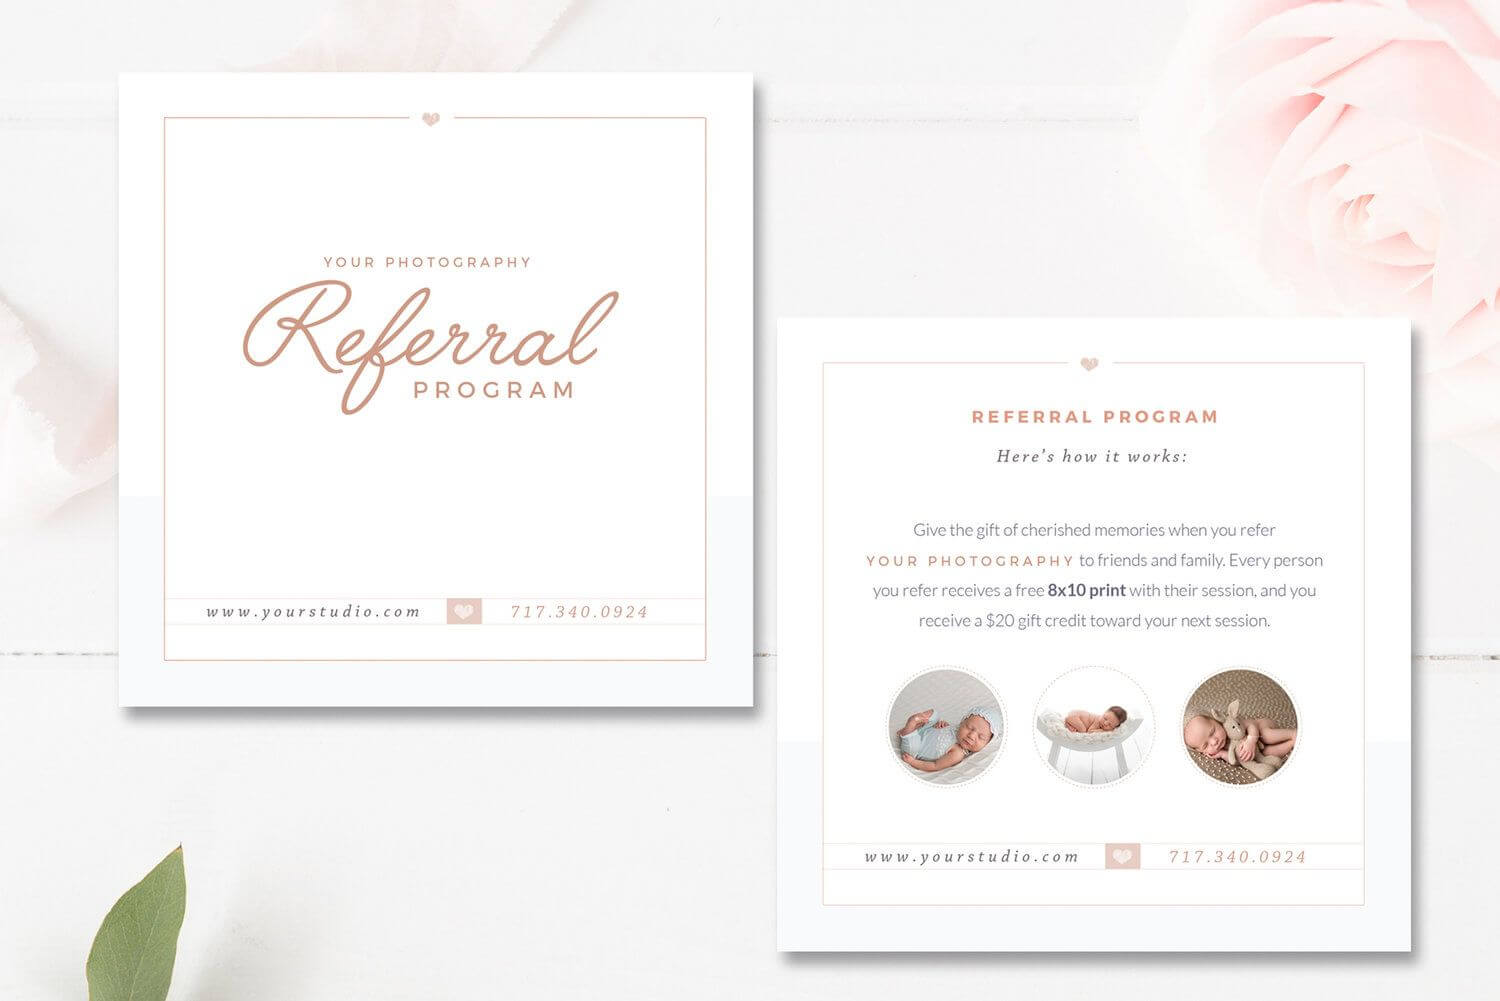 Photography Referral Card Templates, Referral Program Within Photography Referral Card Templates